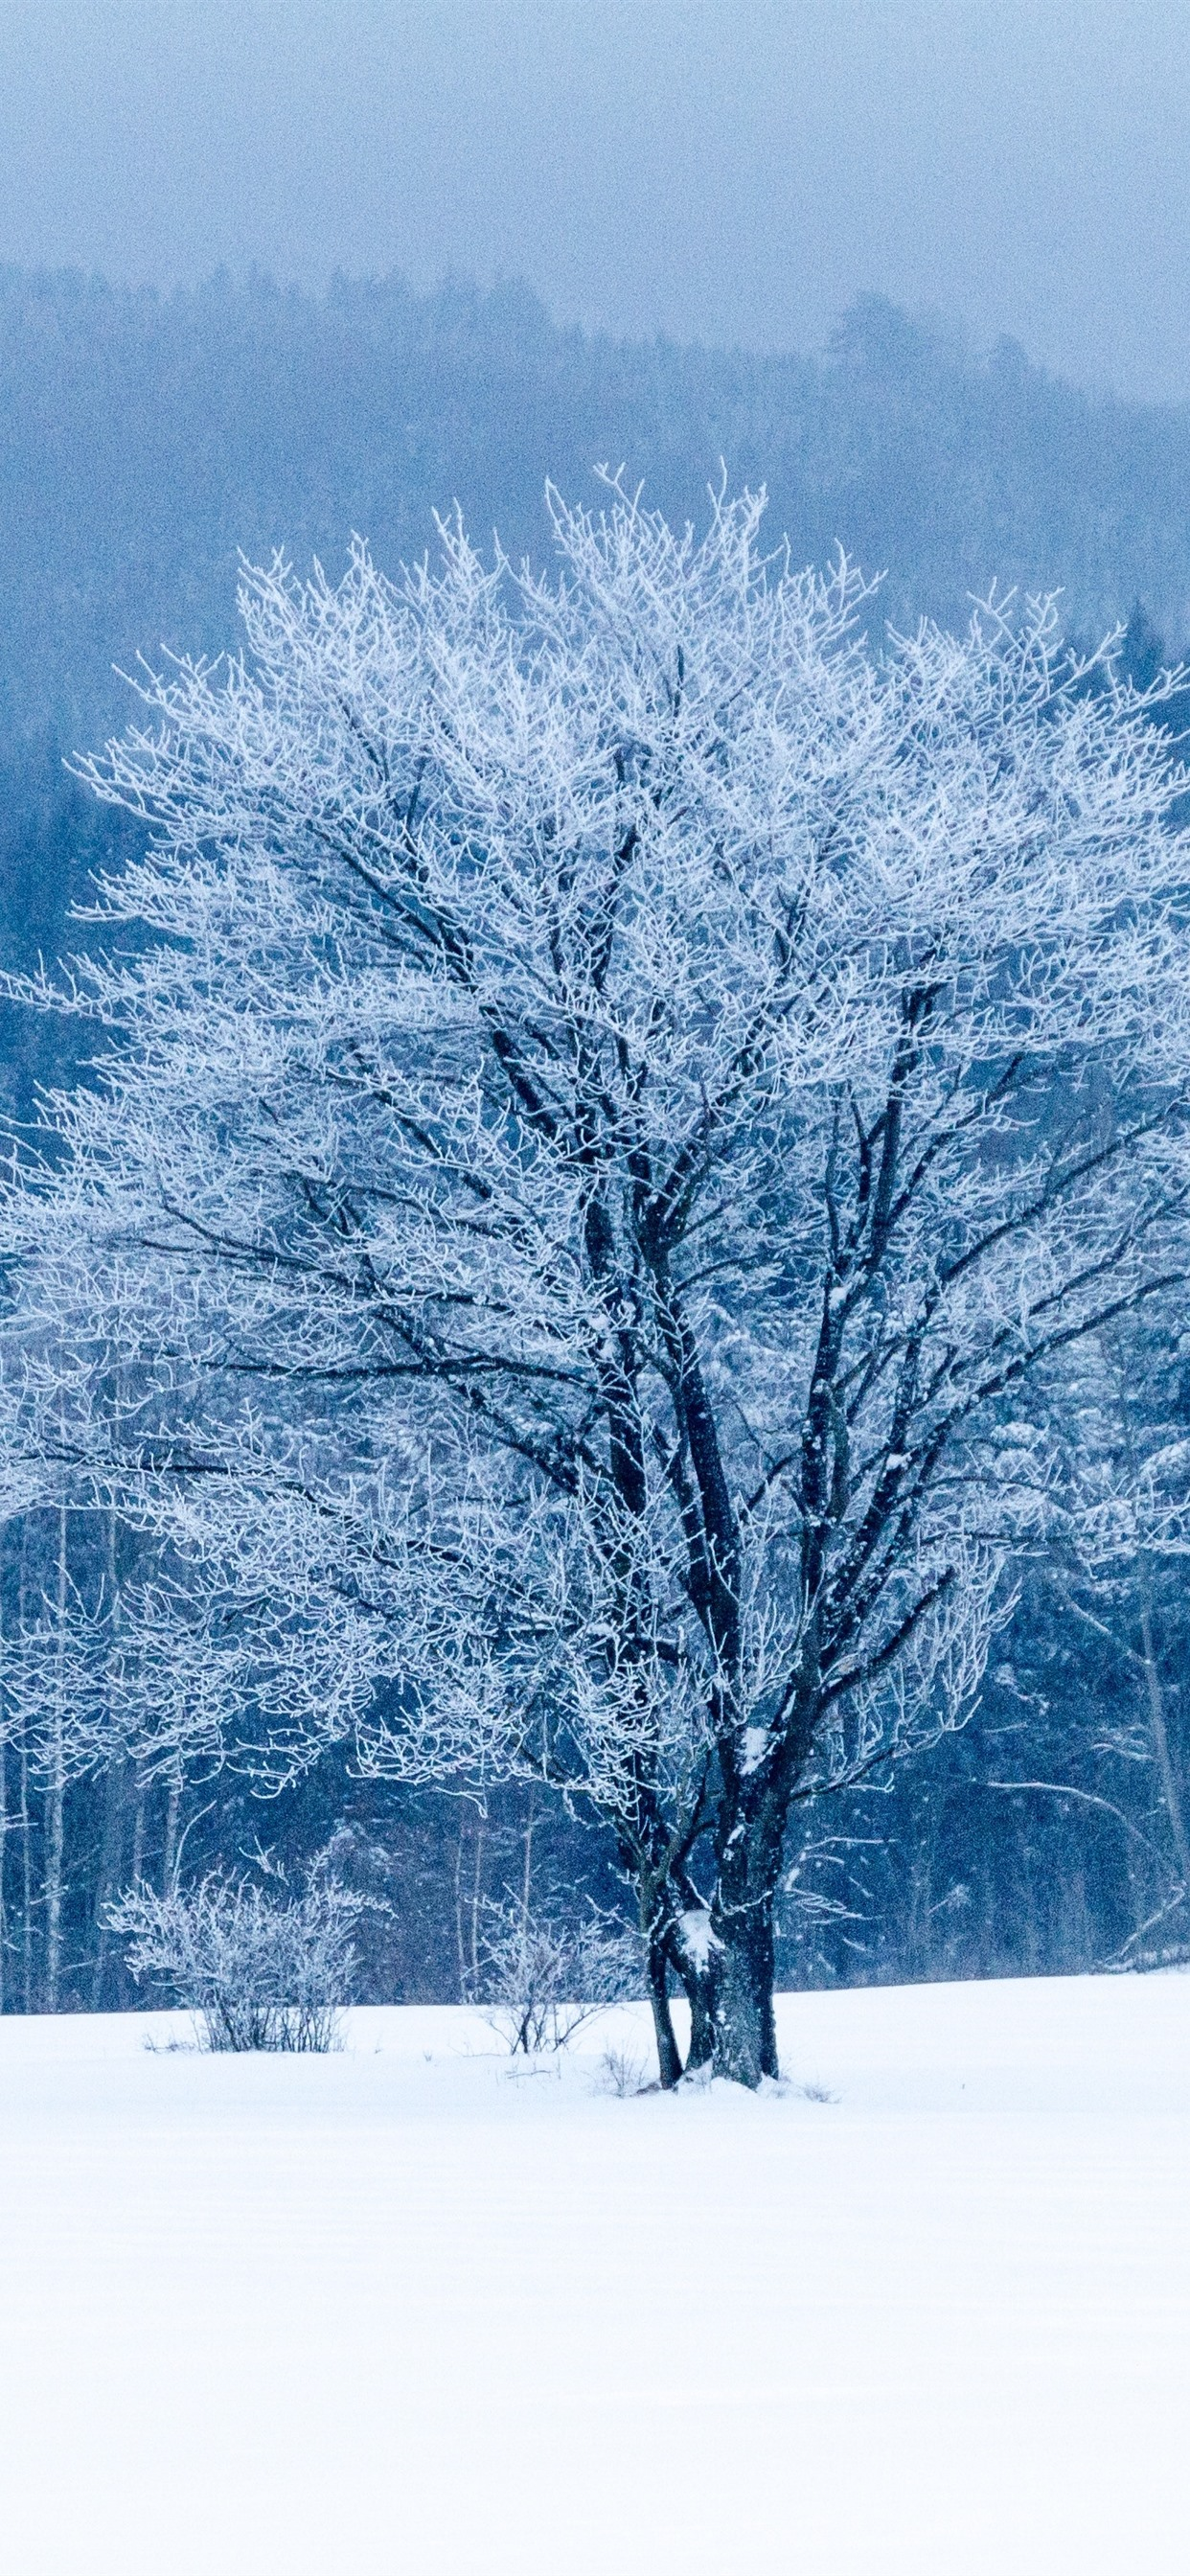 Winter Snow Trees White World 1242x2688 Iphone 11 Pro Xs Max Wallpaper Background Picture Image